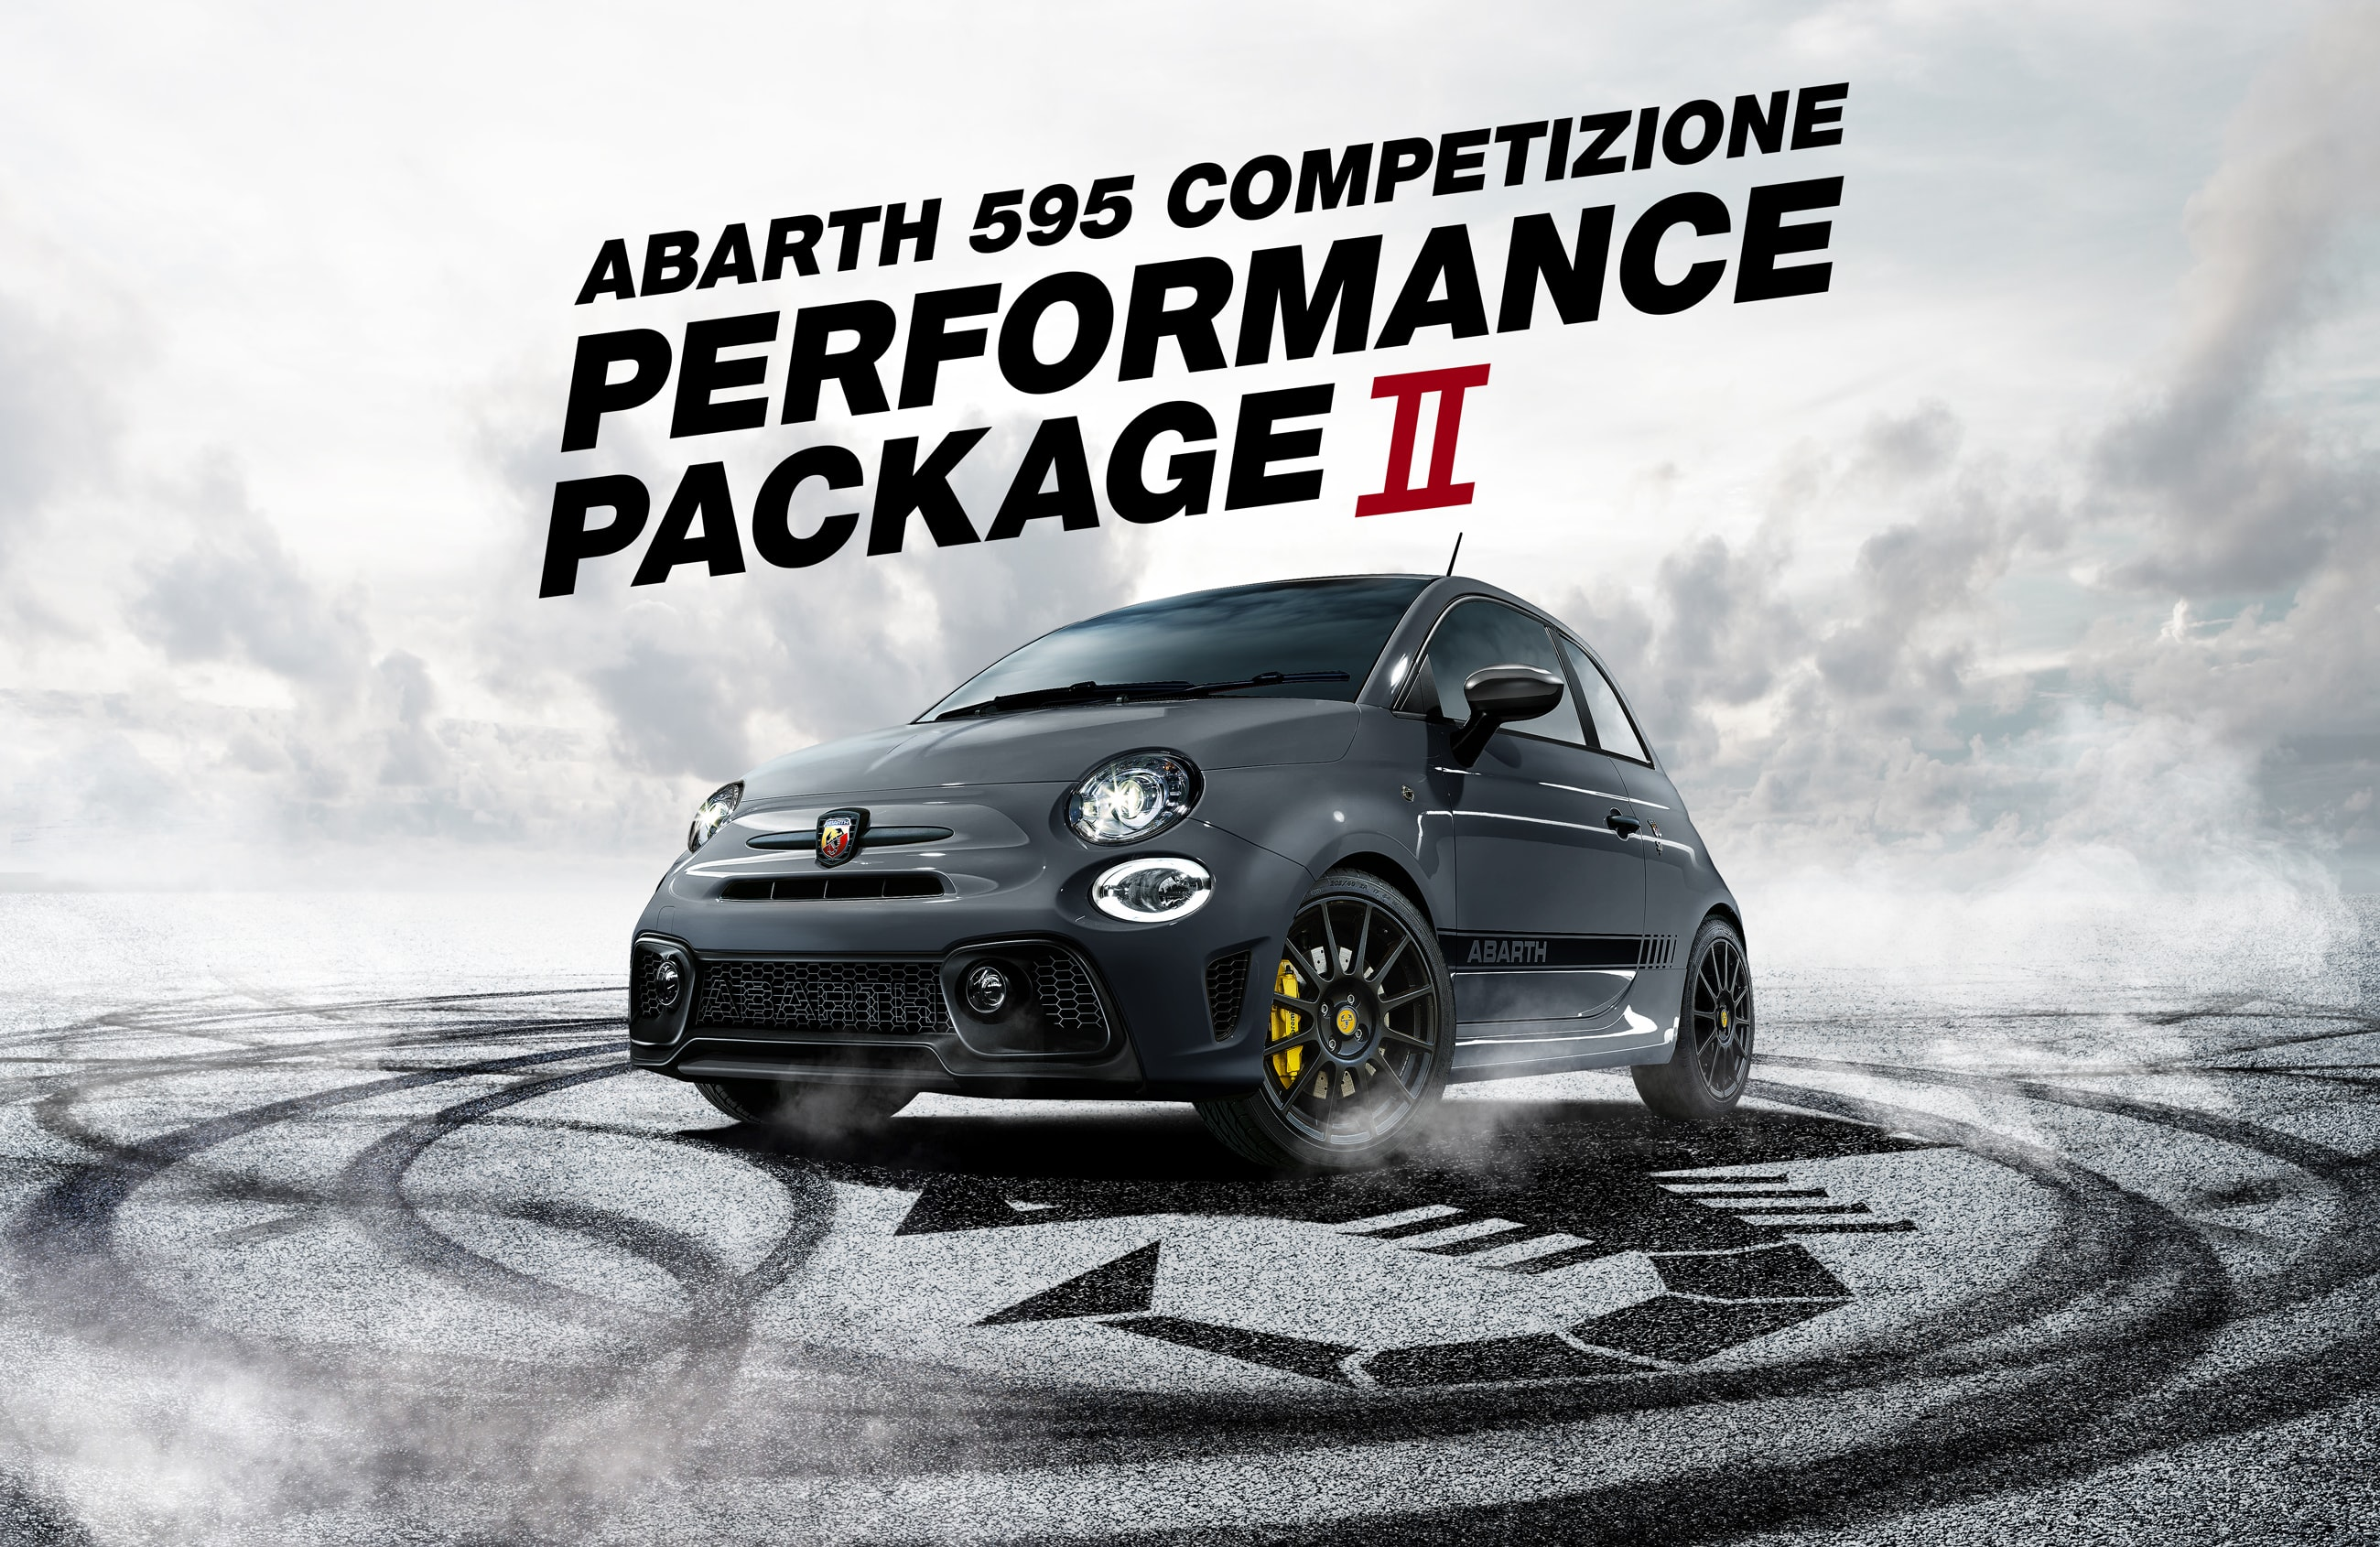 595 Competizione Performance Package!